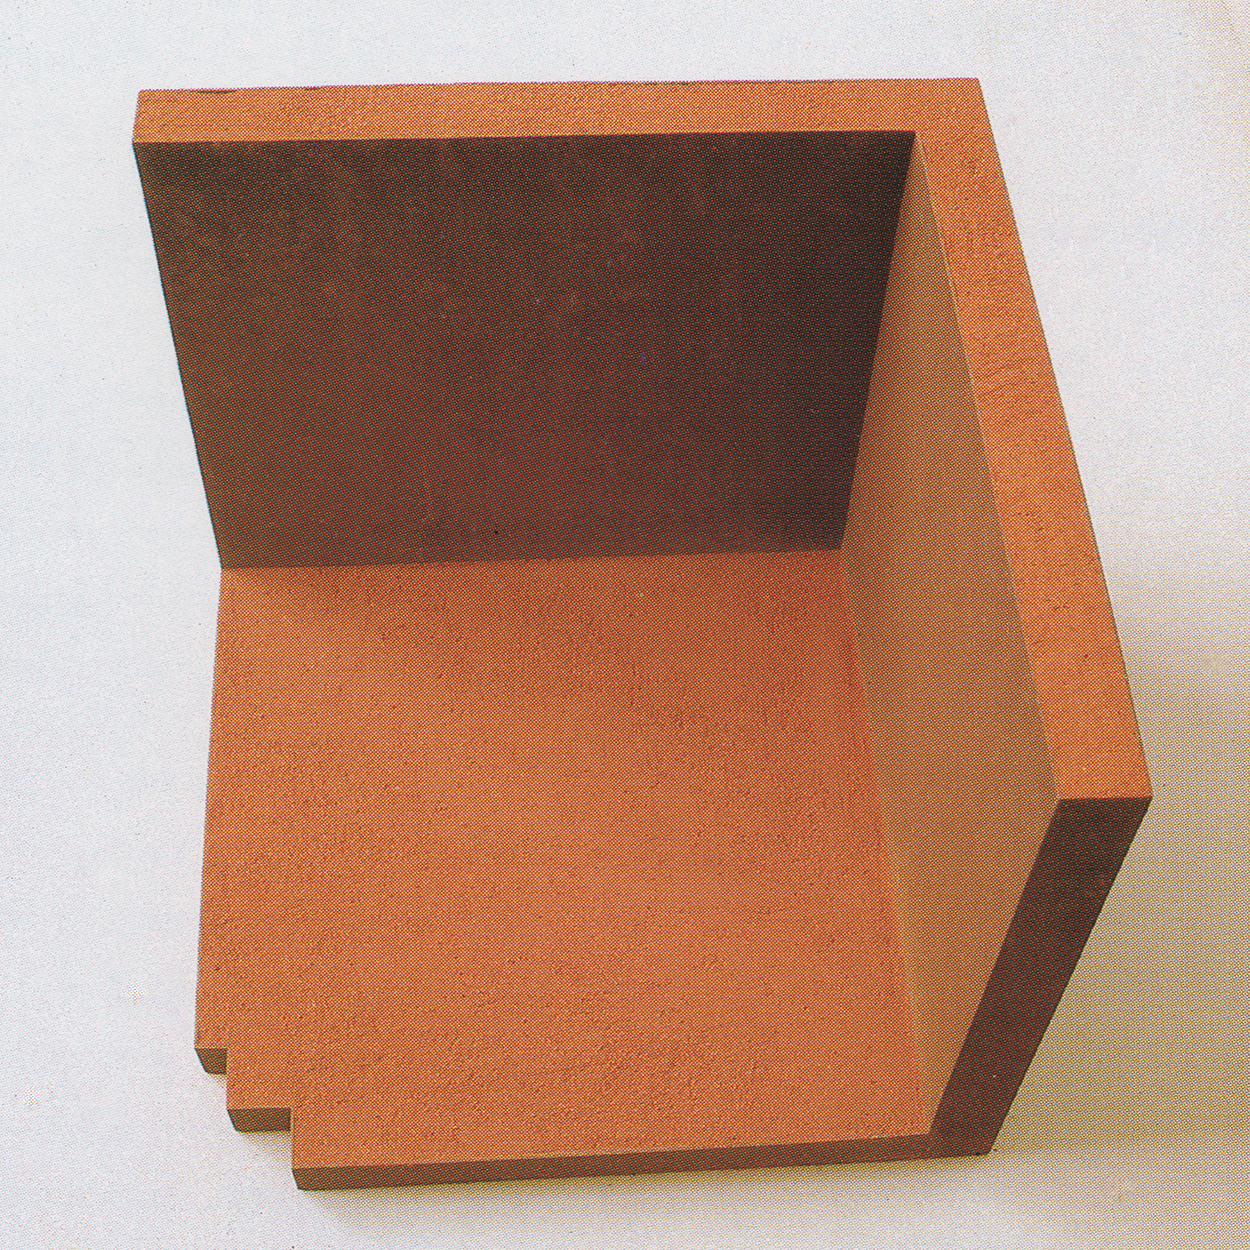 Half|iron and red sand|49 x 45 x 45 cm|1992